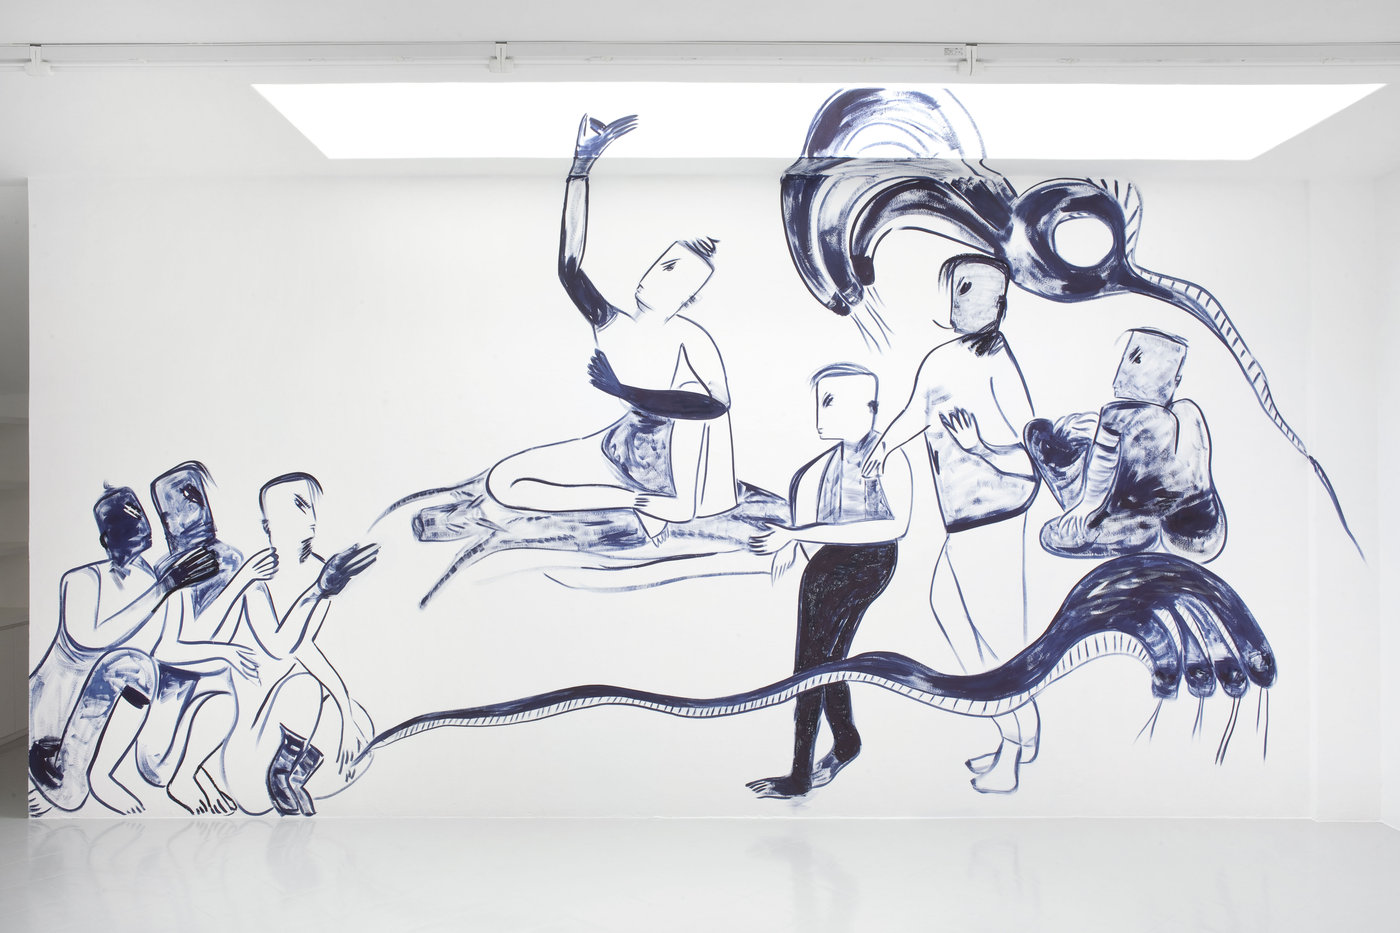 2 - Melike Kara, SAVANNAHS, GRASSLANDS AND DESERTS, 2016, oil stick and ink on wall, 600x300 cm - Courtesy Studiolo, Milan